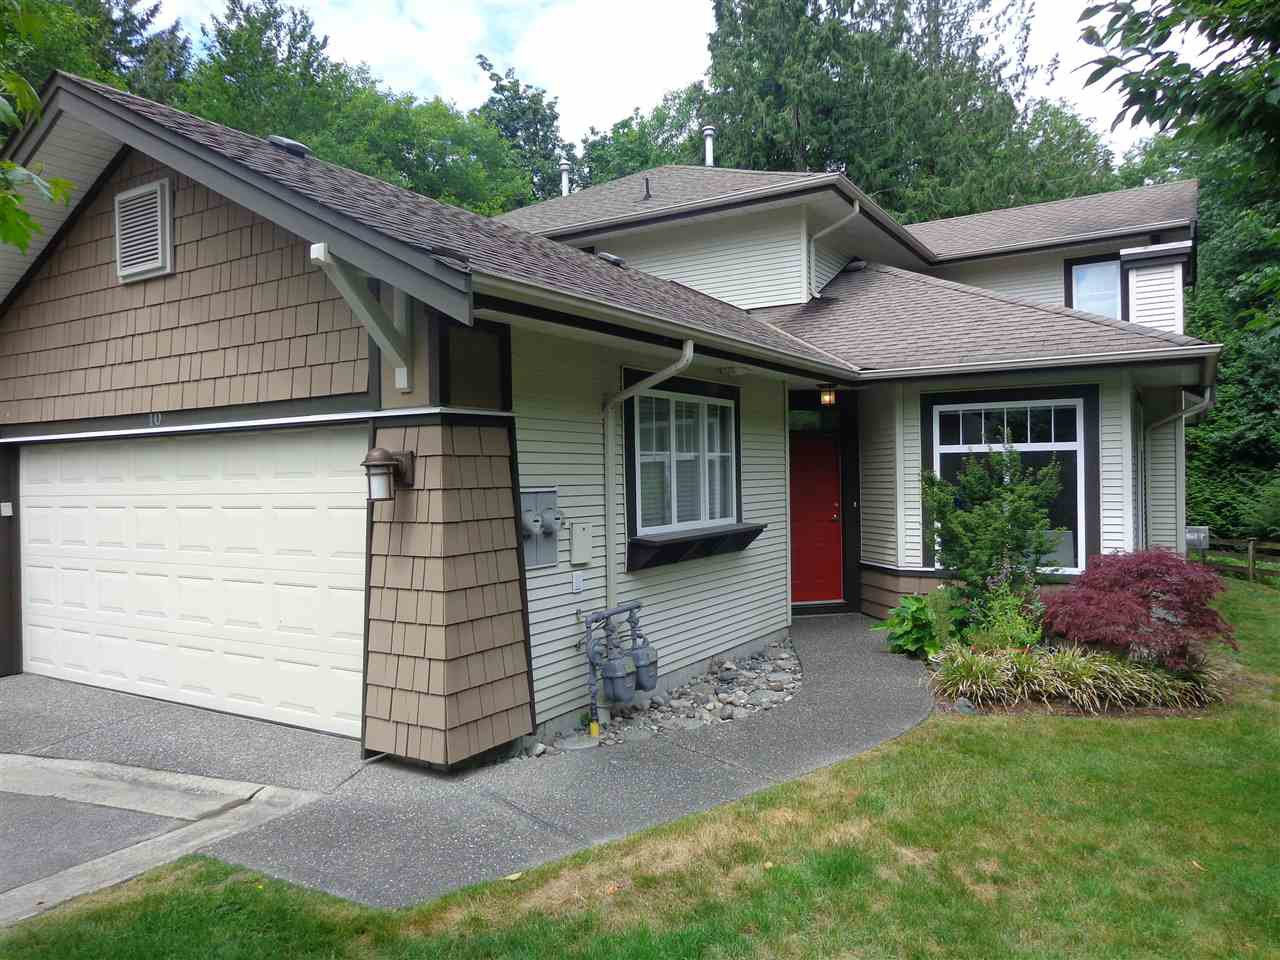 """Photo 1: Photos: 10 8588 168A Street in Surrey: Fleetwood Tynehead Townhouse for sale in """"The Brookstone"""" : MLS®# R2384013"""